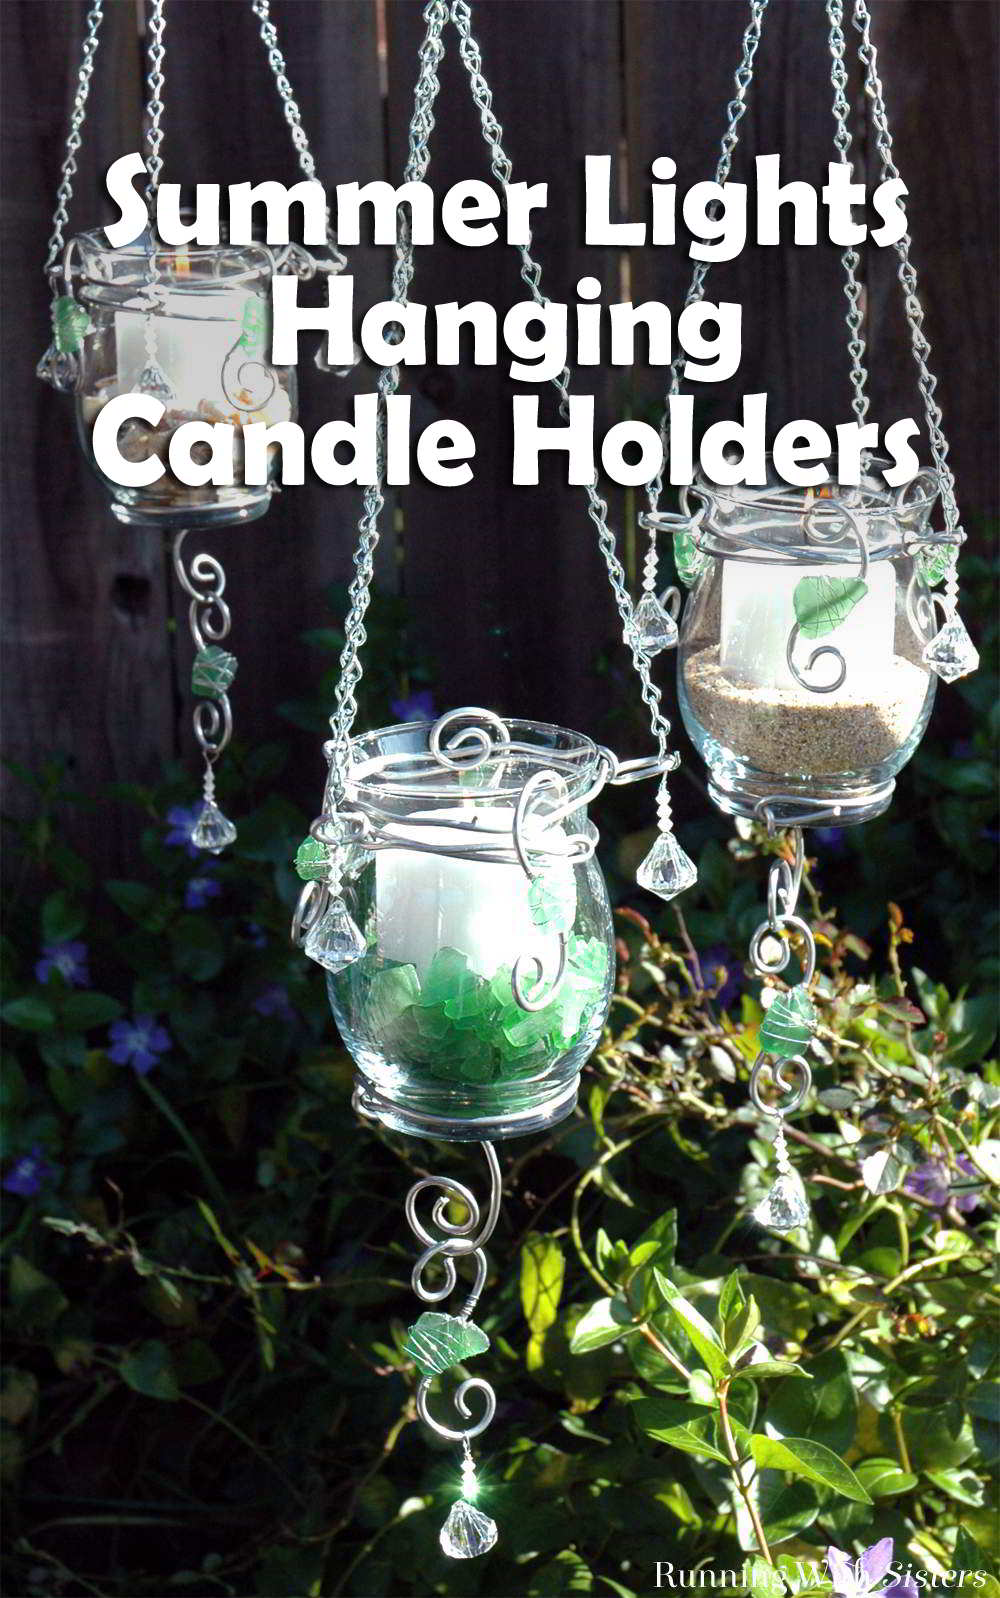 With a simple hurricane candle holder, armature wire, and crystal beads, you can create a trio of hanging candle holders. Add sea glass, sand, or seashells!